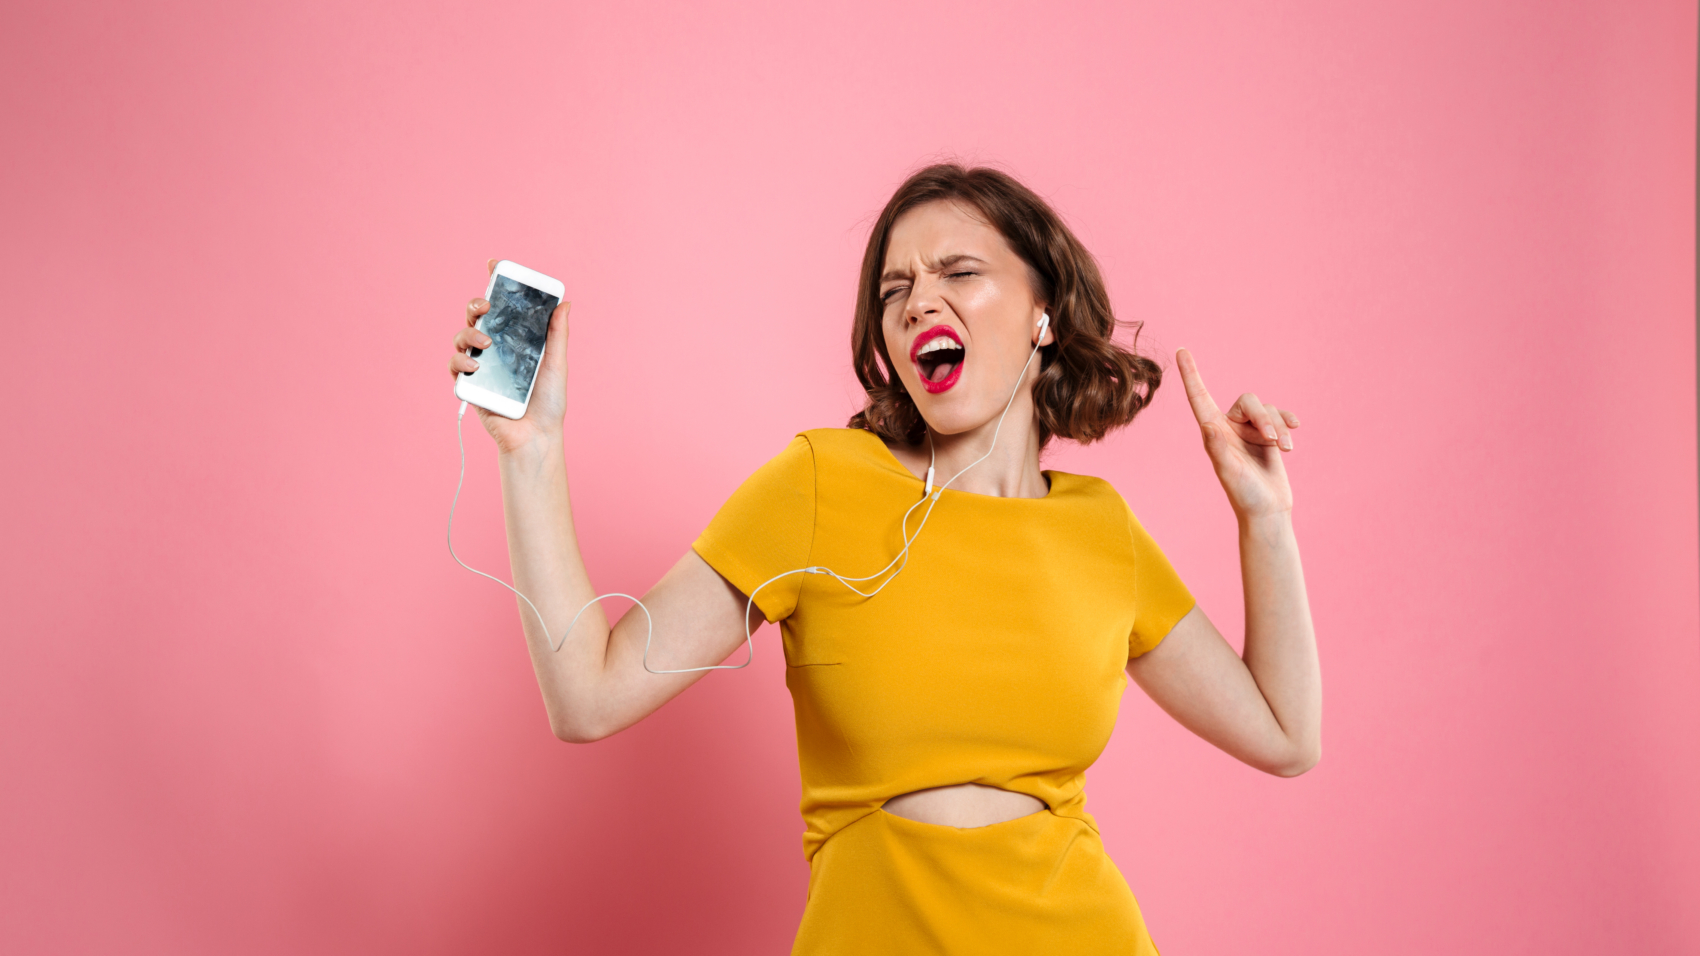 Portrait of a joyful woman in dress and make up listening to music with earphones while holding mobile phone and singing isolated over pink background